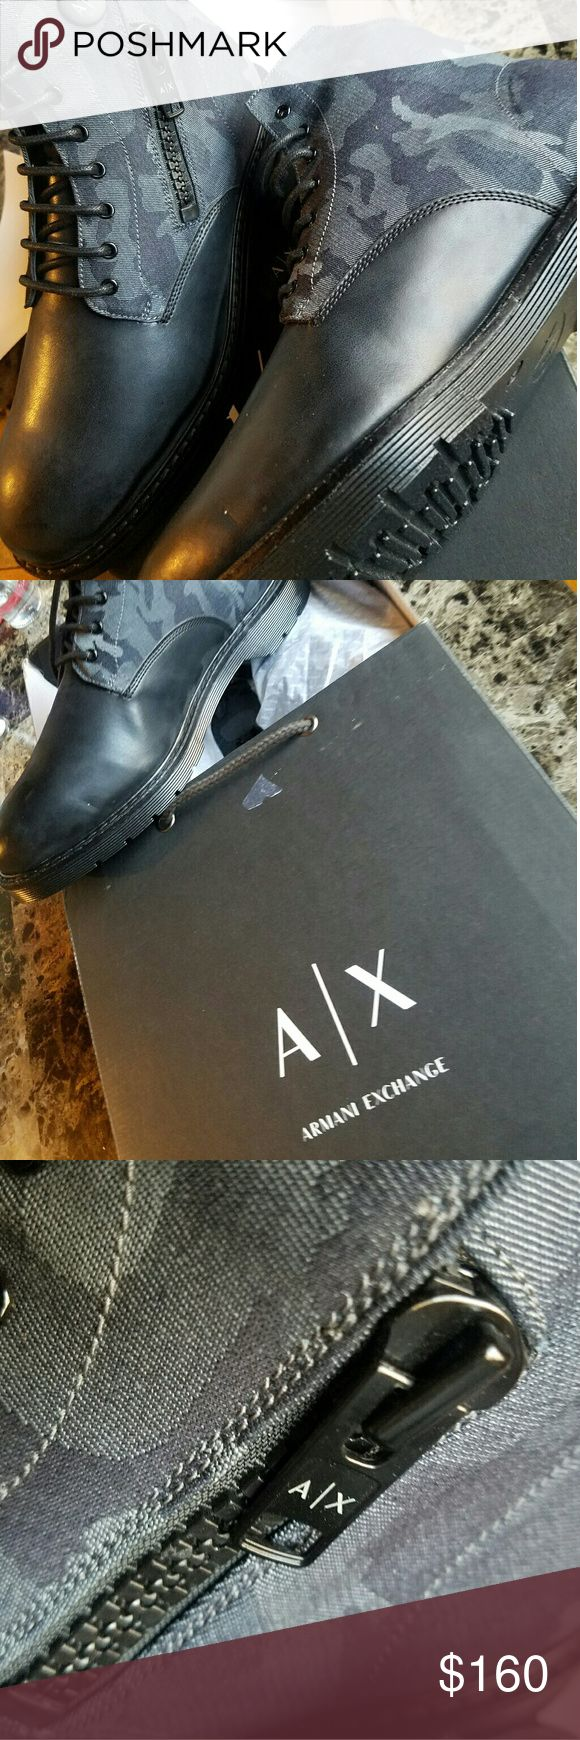 Armani Exchange A|X Camo Zippered Boots Original. Never Worned. Bought the wrong size. Really Nice Camo A|X Zippered Boots.  US Size 10  Items comes with original box from store.  Ships as soon as possible. Armani Exchange Shoes Boots